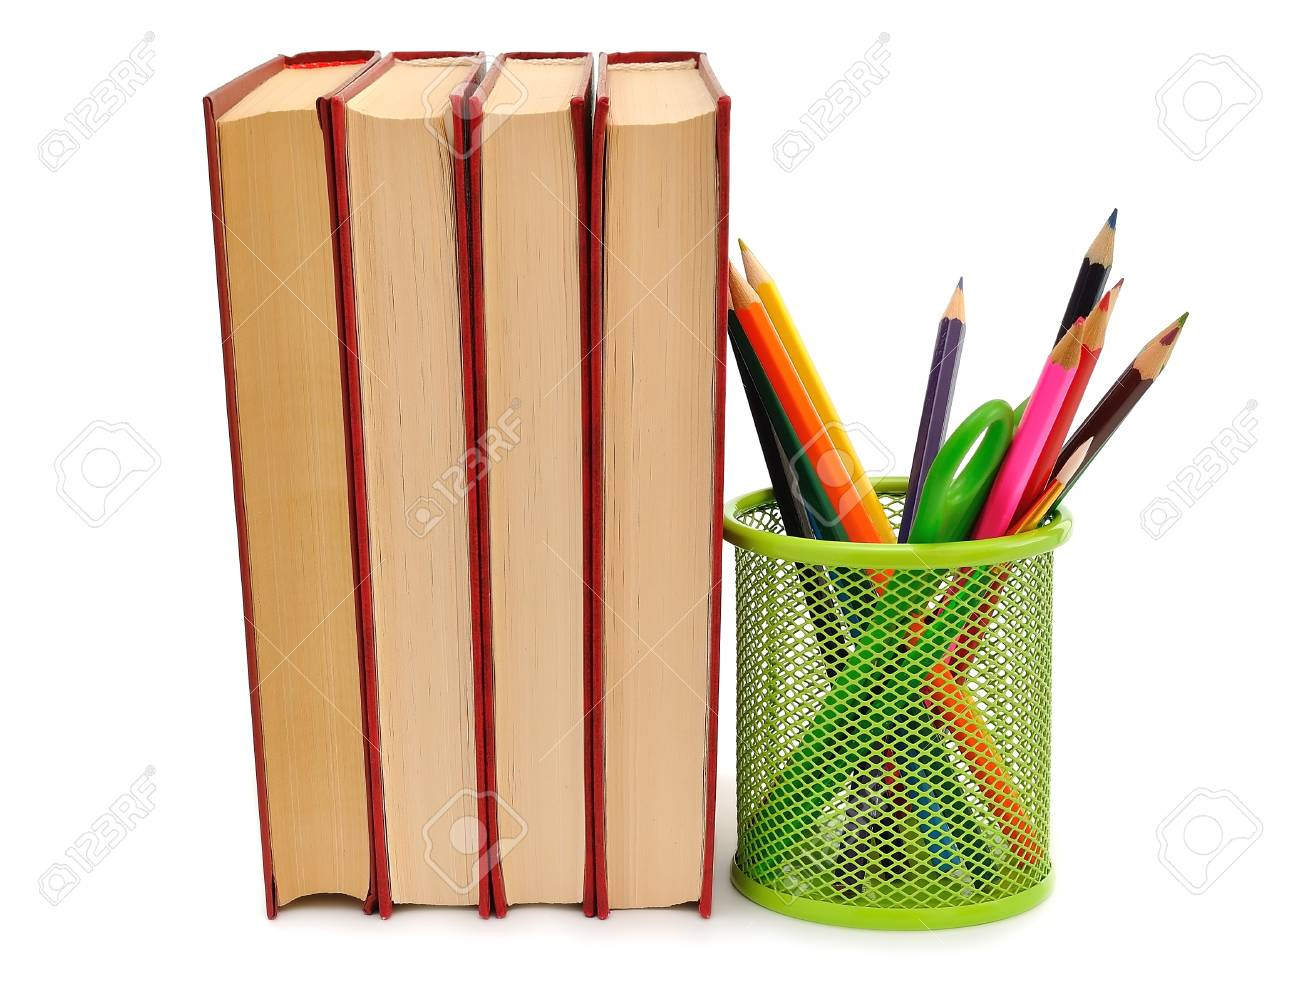 Books and pencils on a white background Stock Photo - 14594927